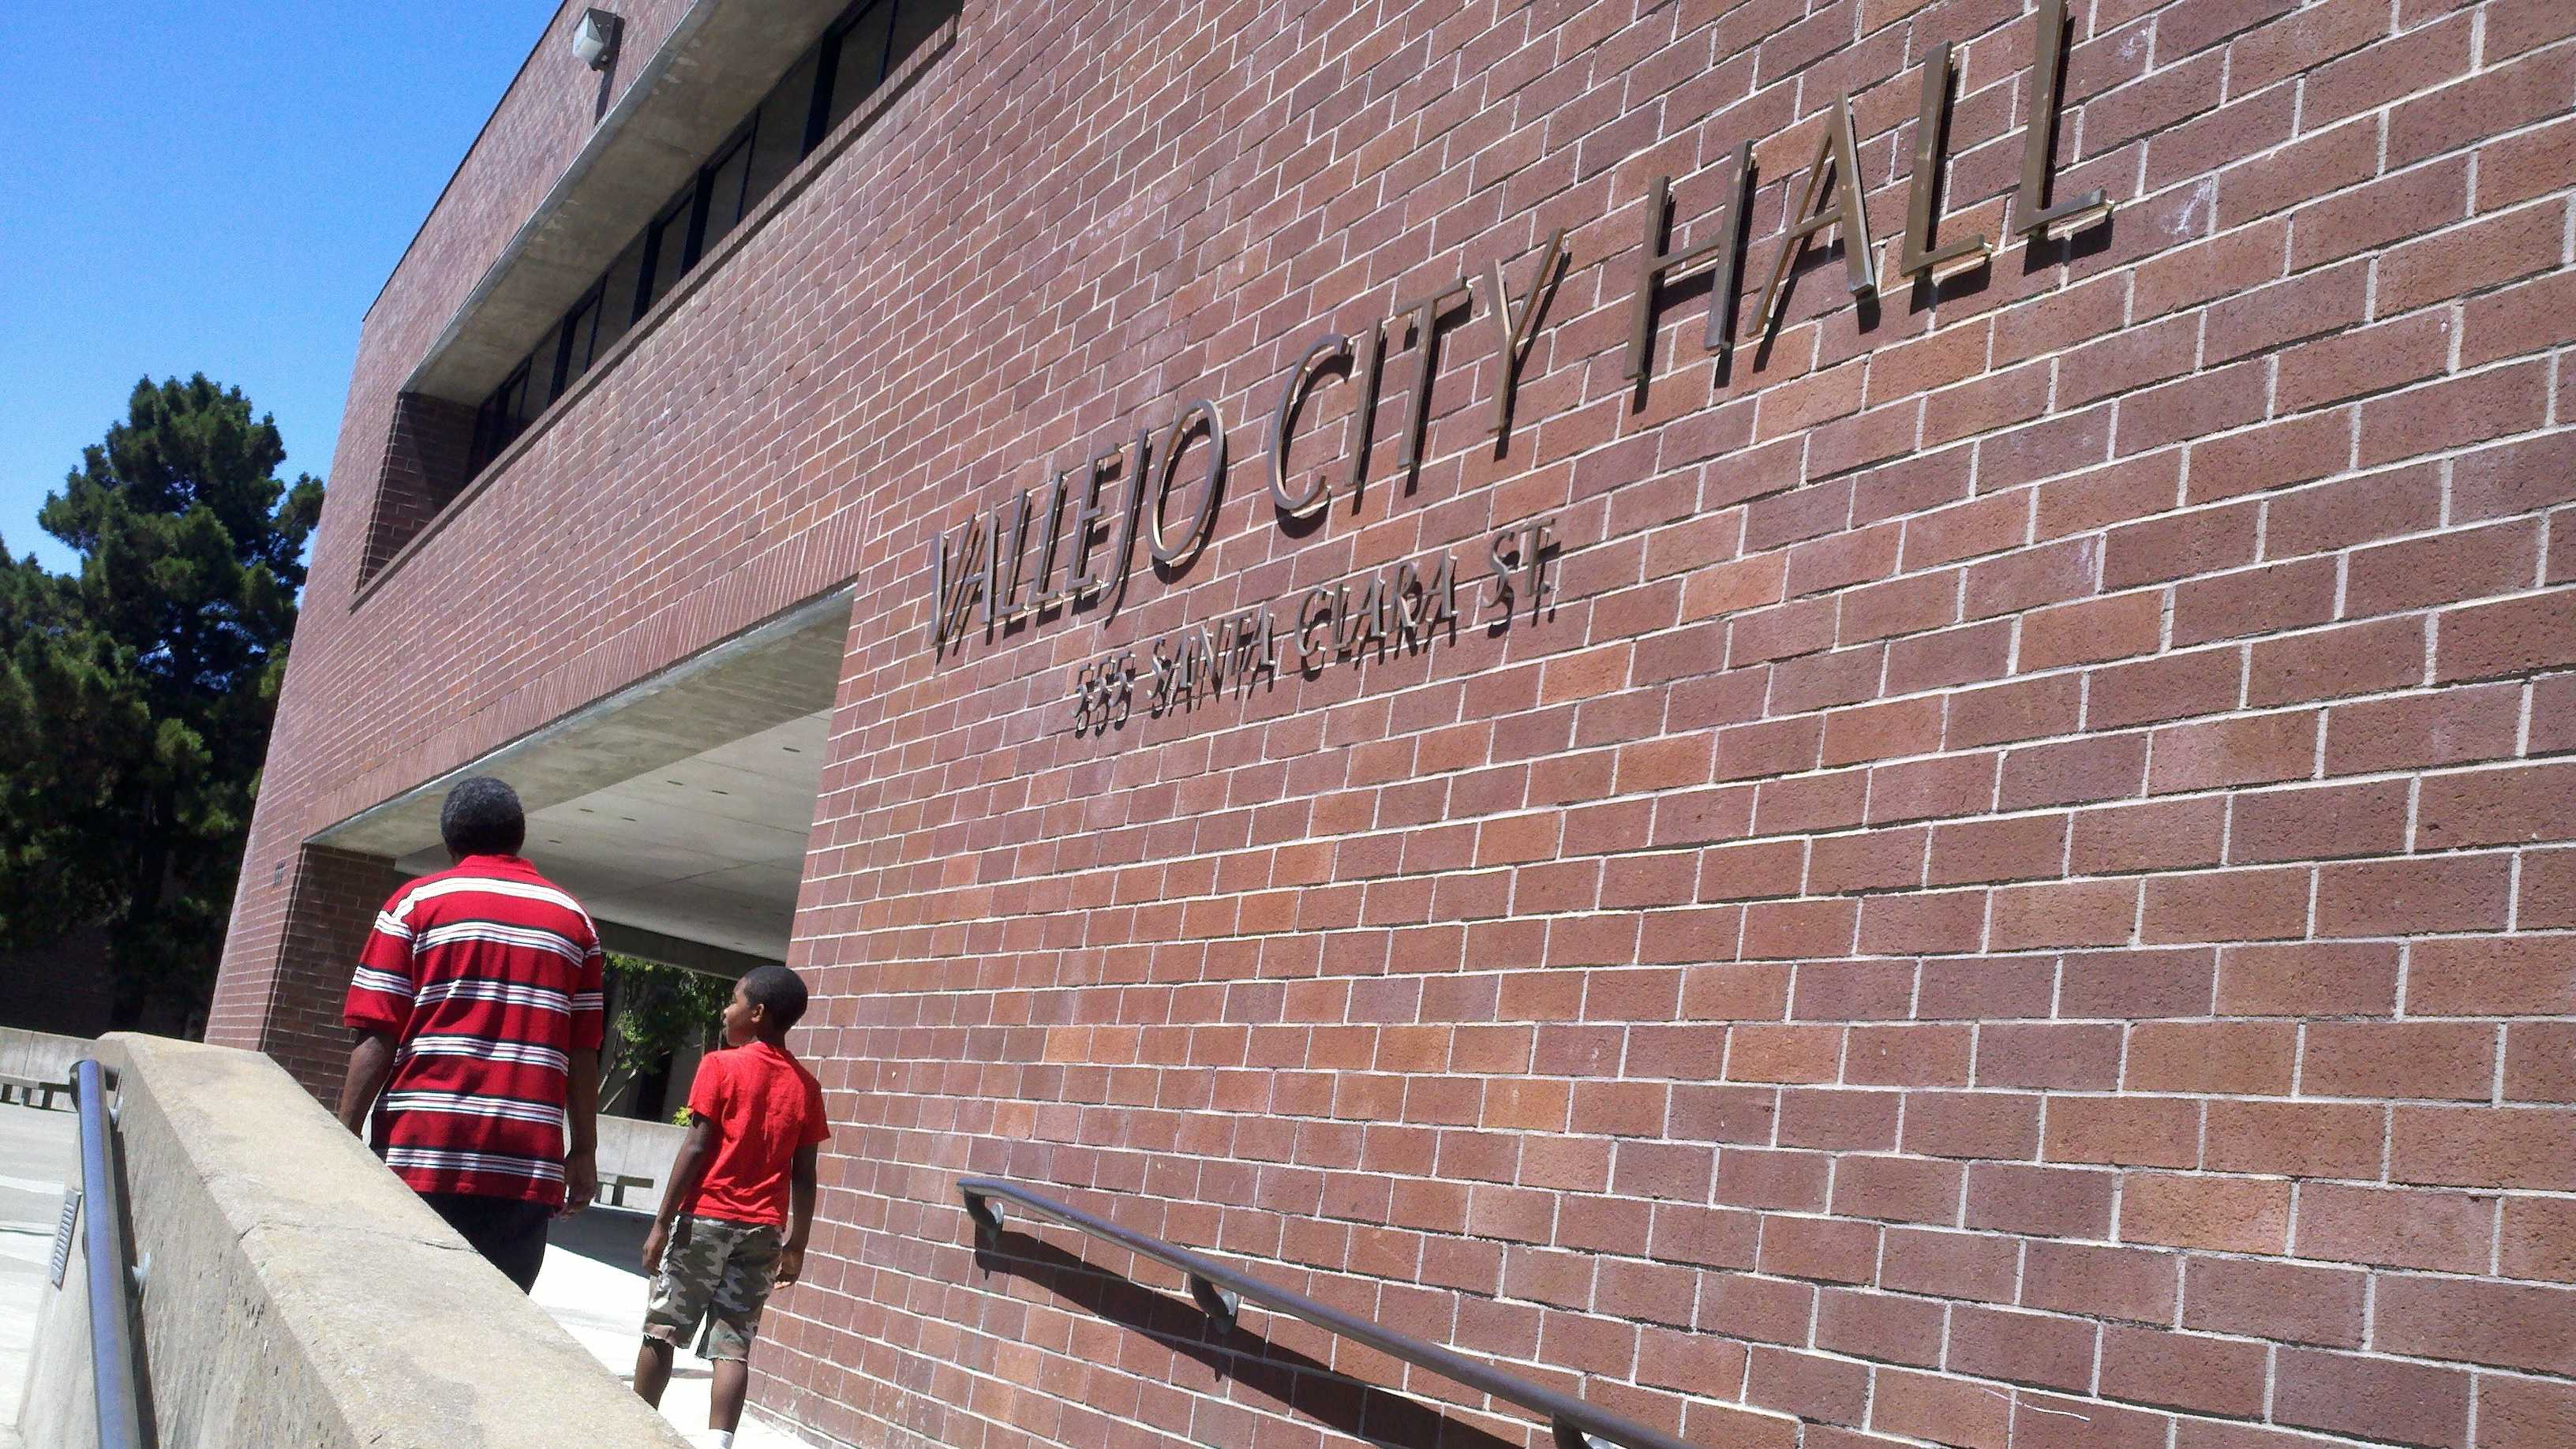 Vallejo City Hall